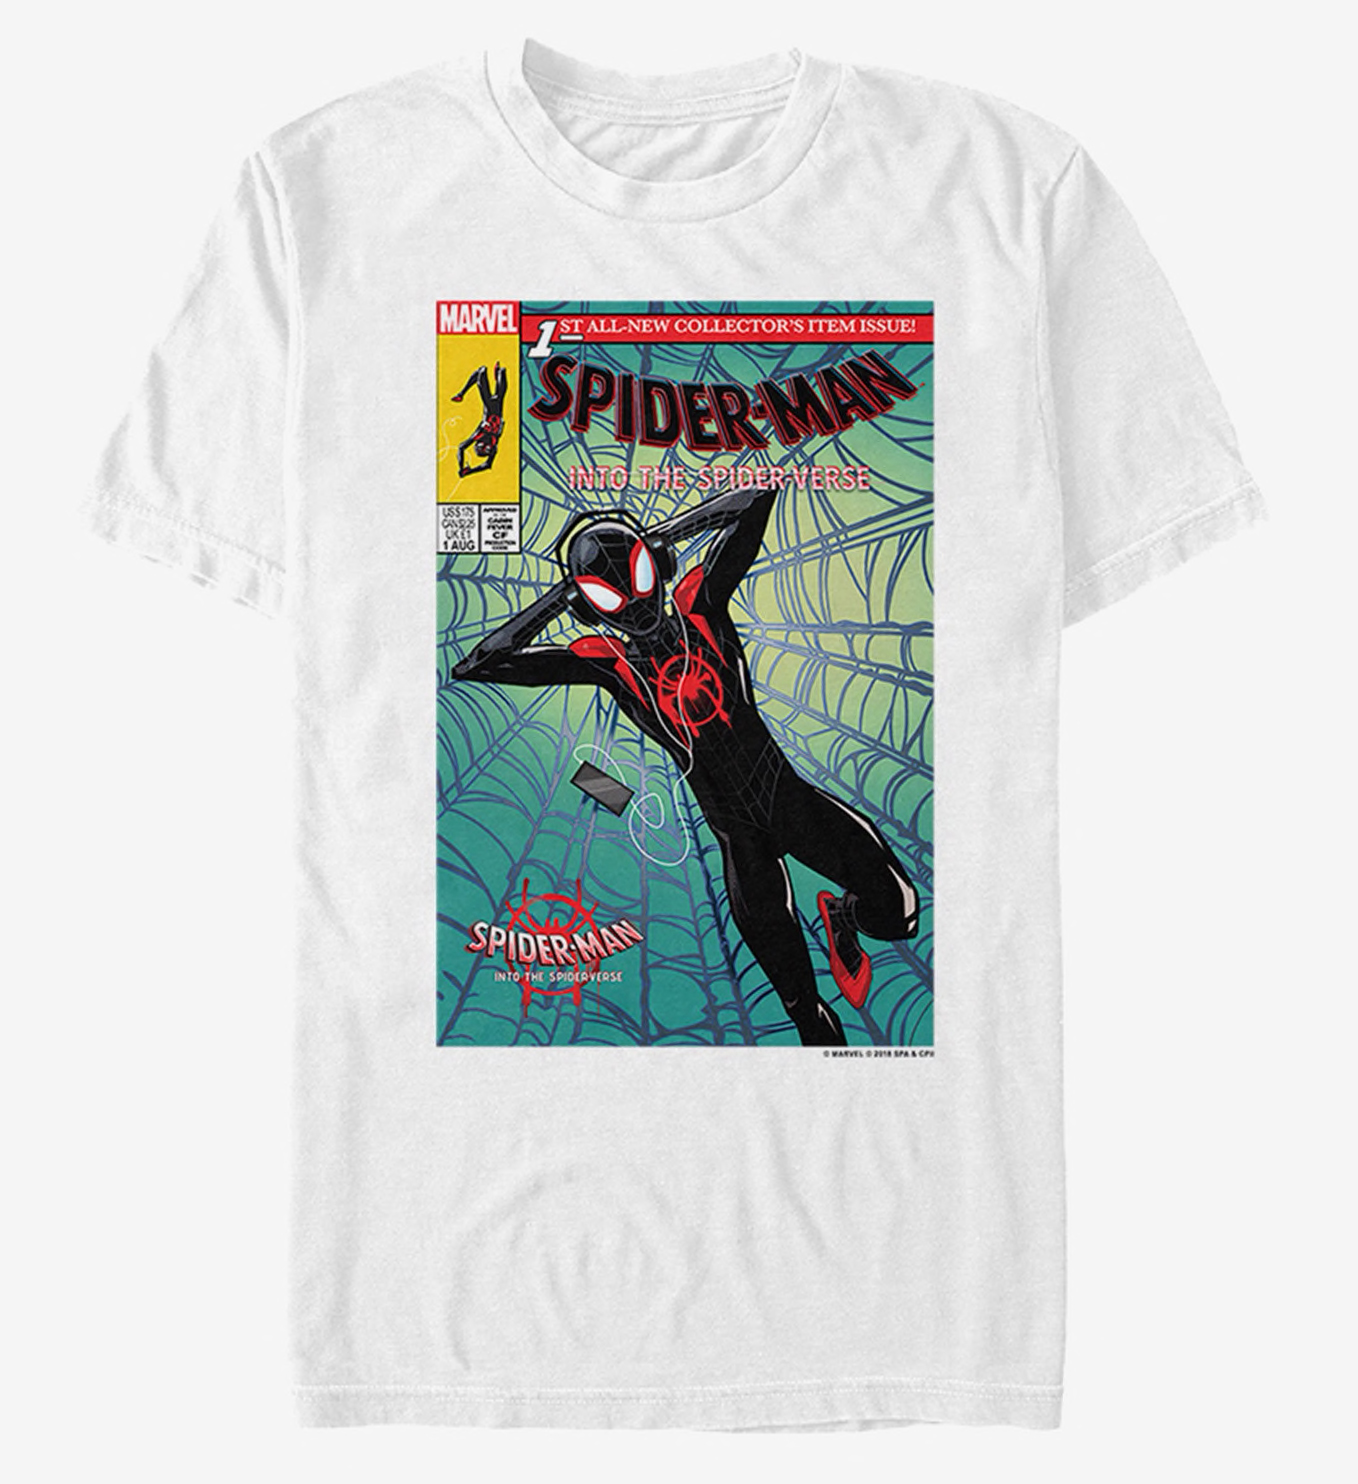 spiderman-spider-verse-shirt-match-jordan-1-origin-story-10